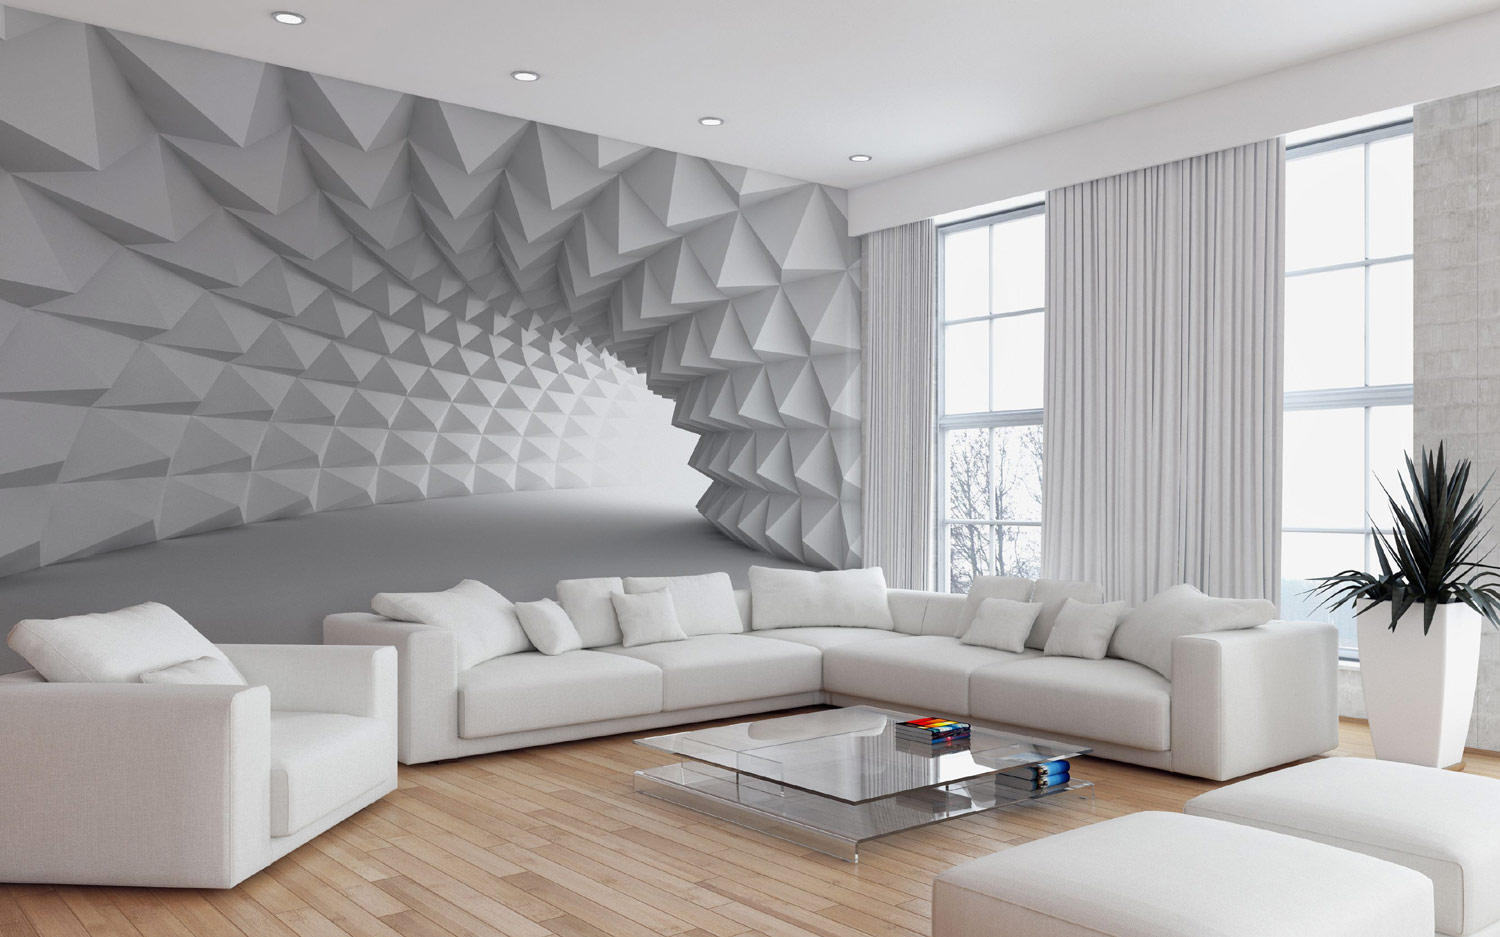 Modern 3d Wallpaper Murals For Living Room Modern Living Room Wallpaper Ideas 1500x937 Download Hd Wallpaper Wallpapertip